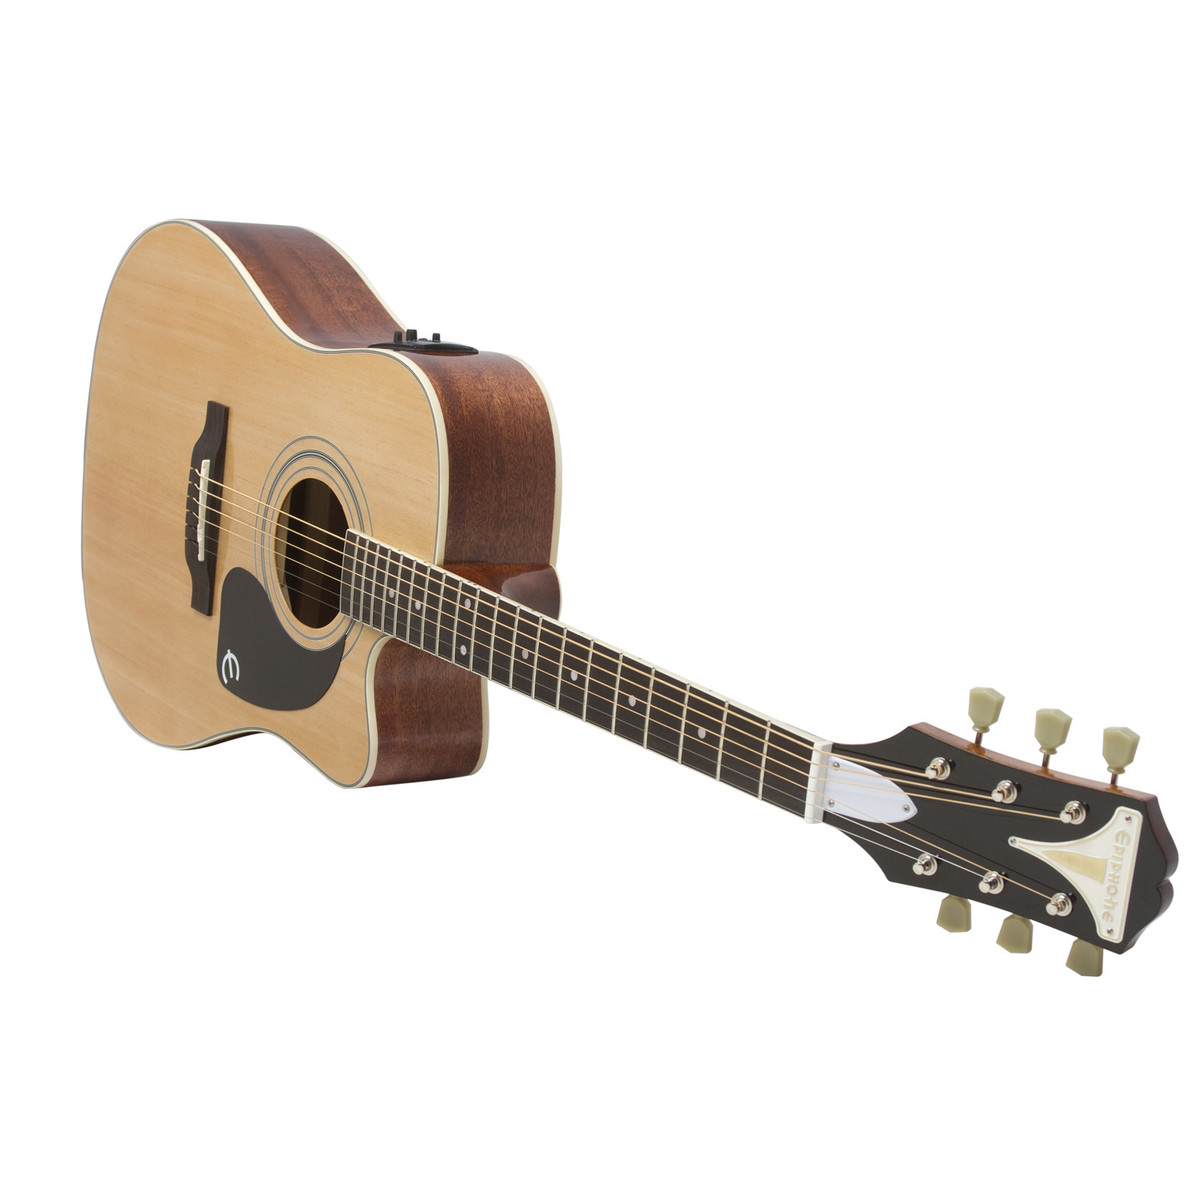 Epiphone Pro 1 Ultra : epiphone pro 1 ultra electro acoustic natural at ~ Russianpoet.info Haus und Dekorationen